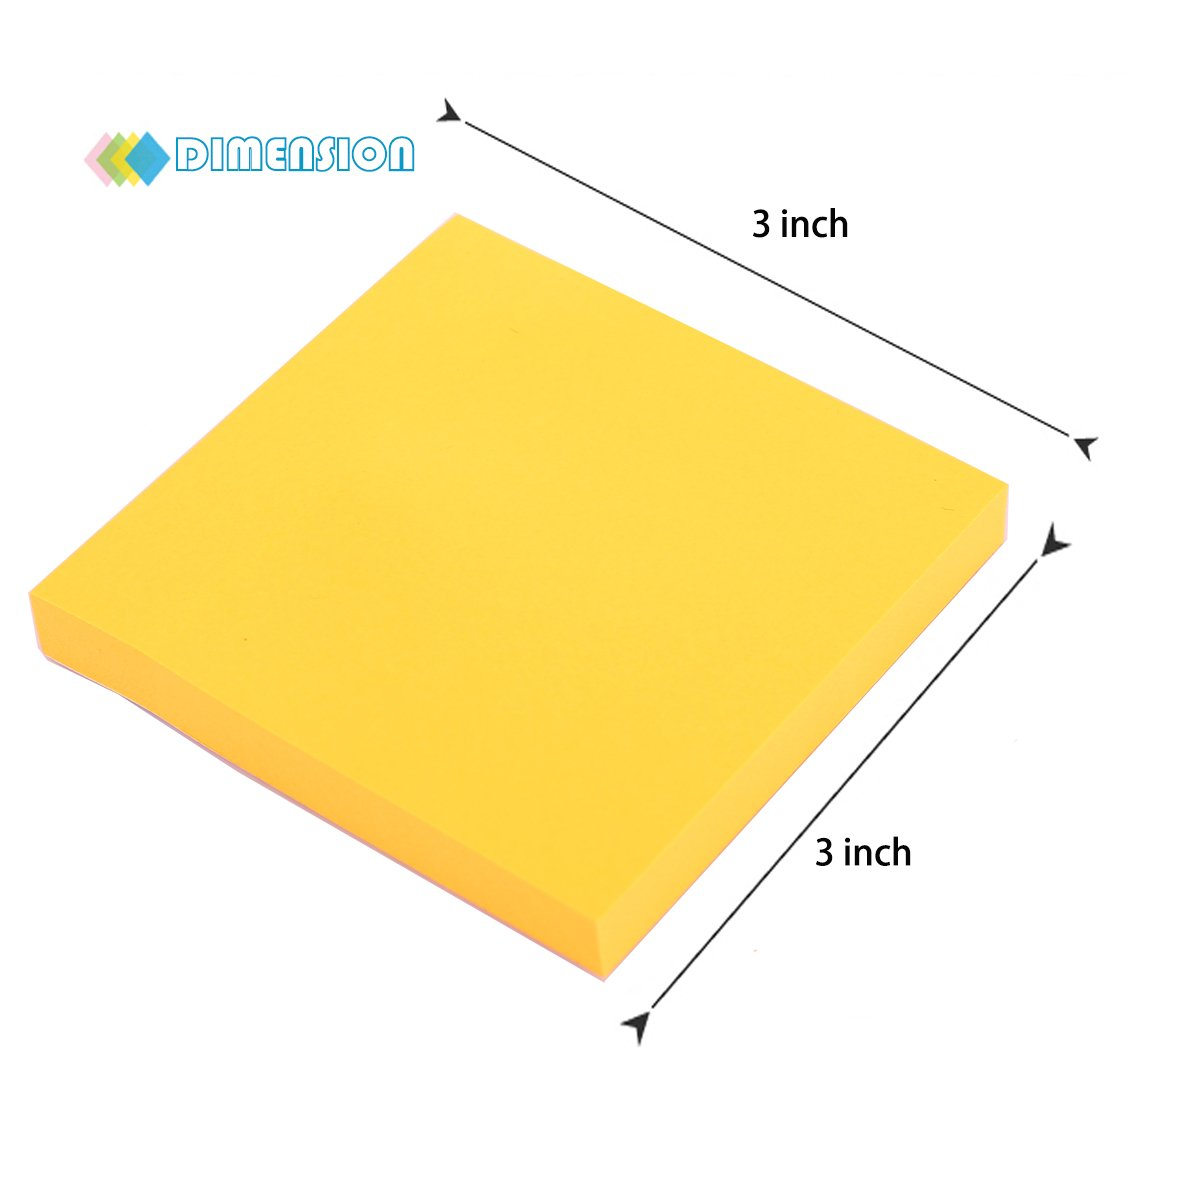 Sticky Notes, 3 in x 3 in, 12 Pads/Pack,100 Sheets/Pad, 6 Bright Colors Self-Stick Notes for Home,Office, School, Easy Post. by ERBAO (Image #7)